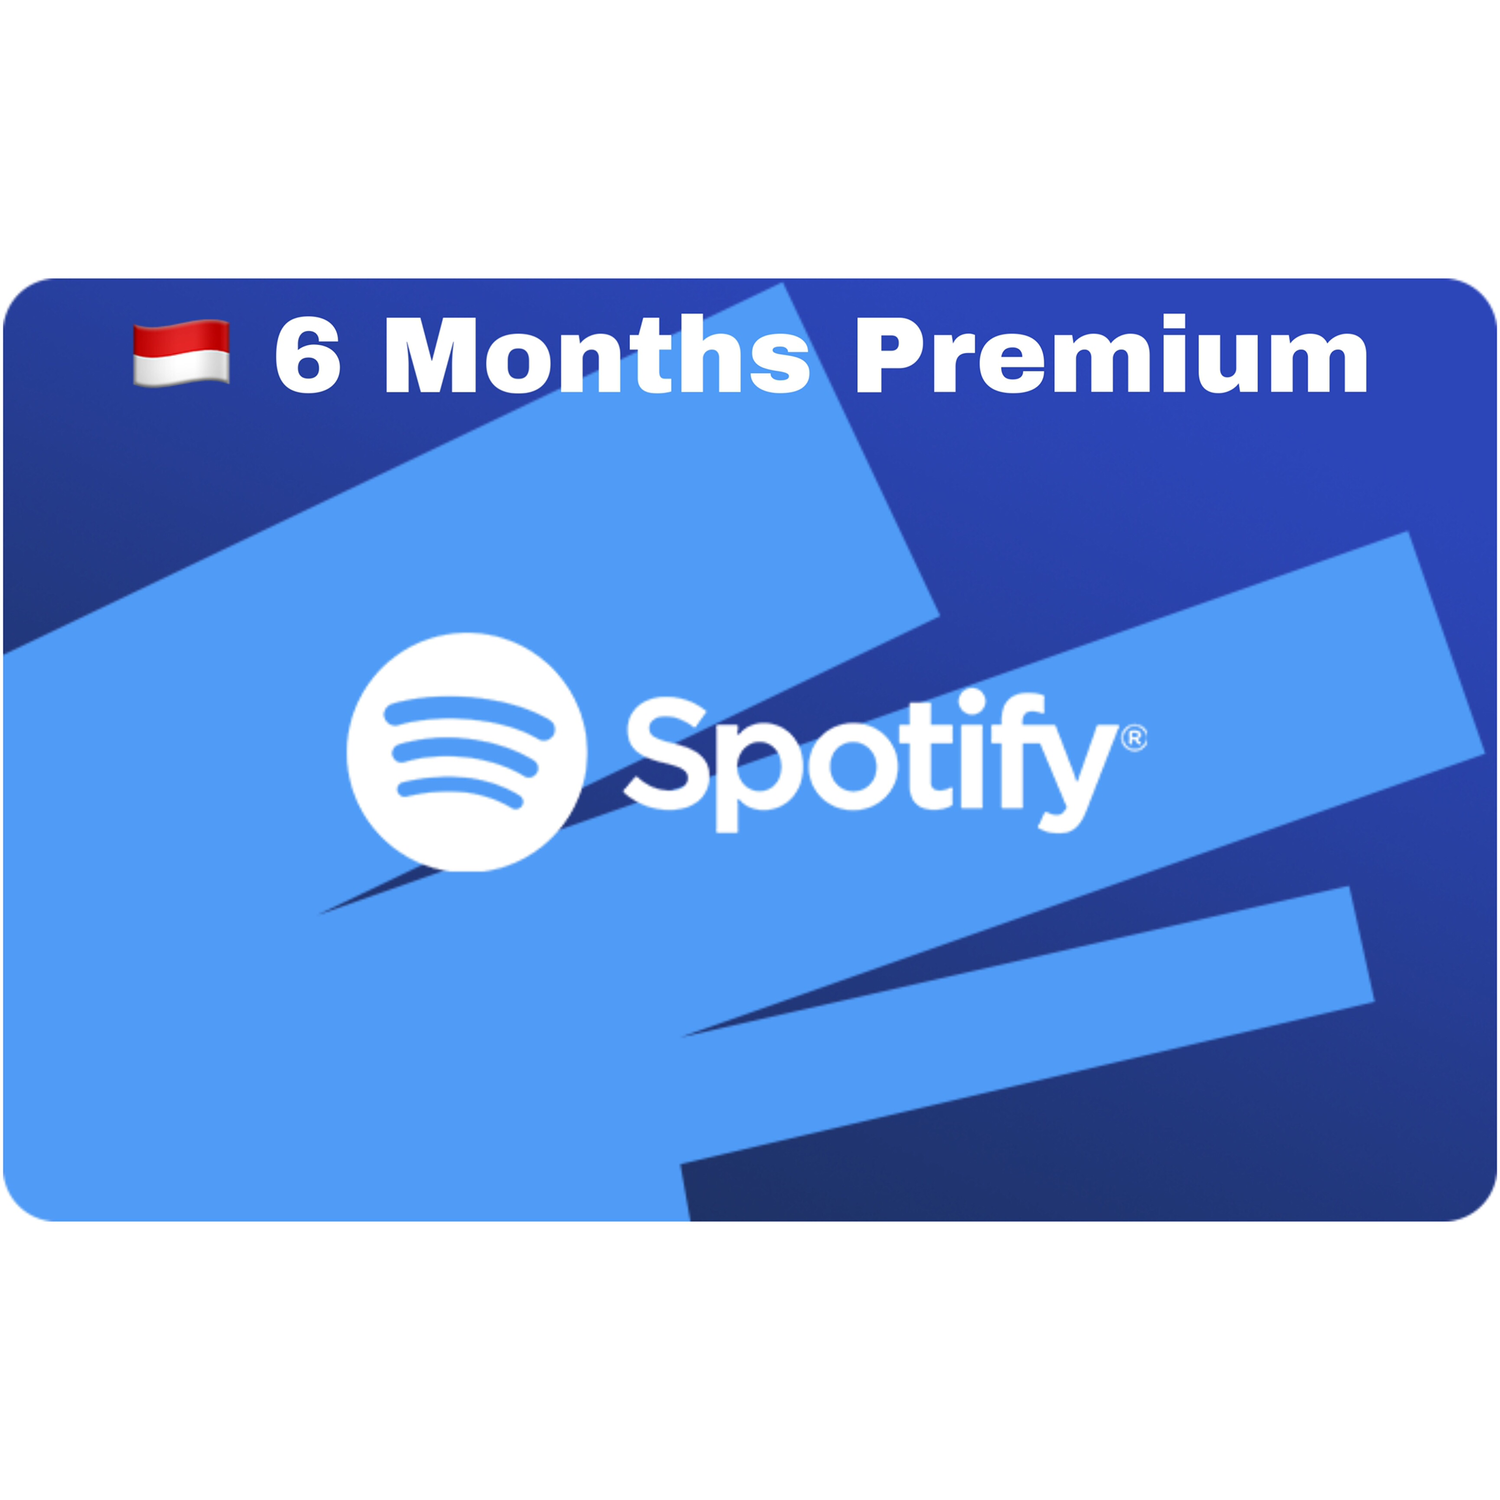 Spotify Gift Card Indonesia 6 Months Premium